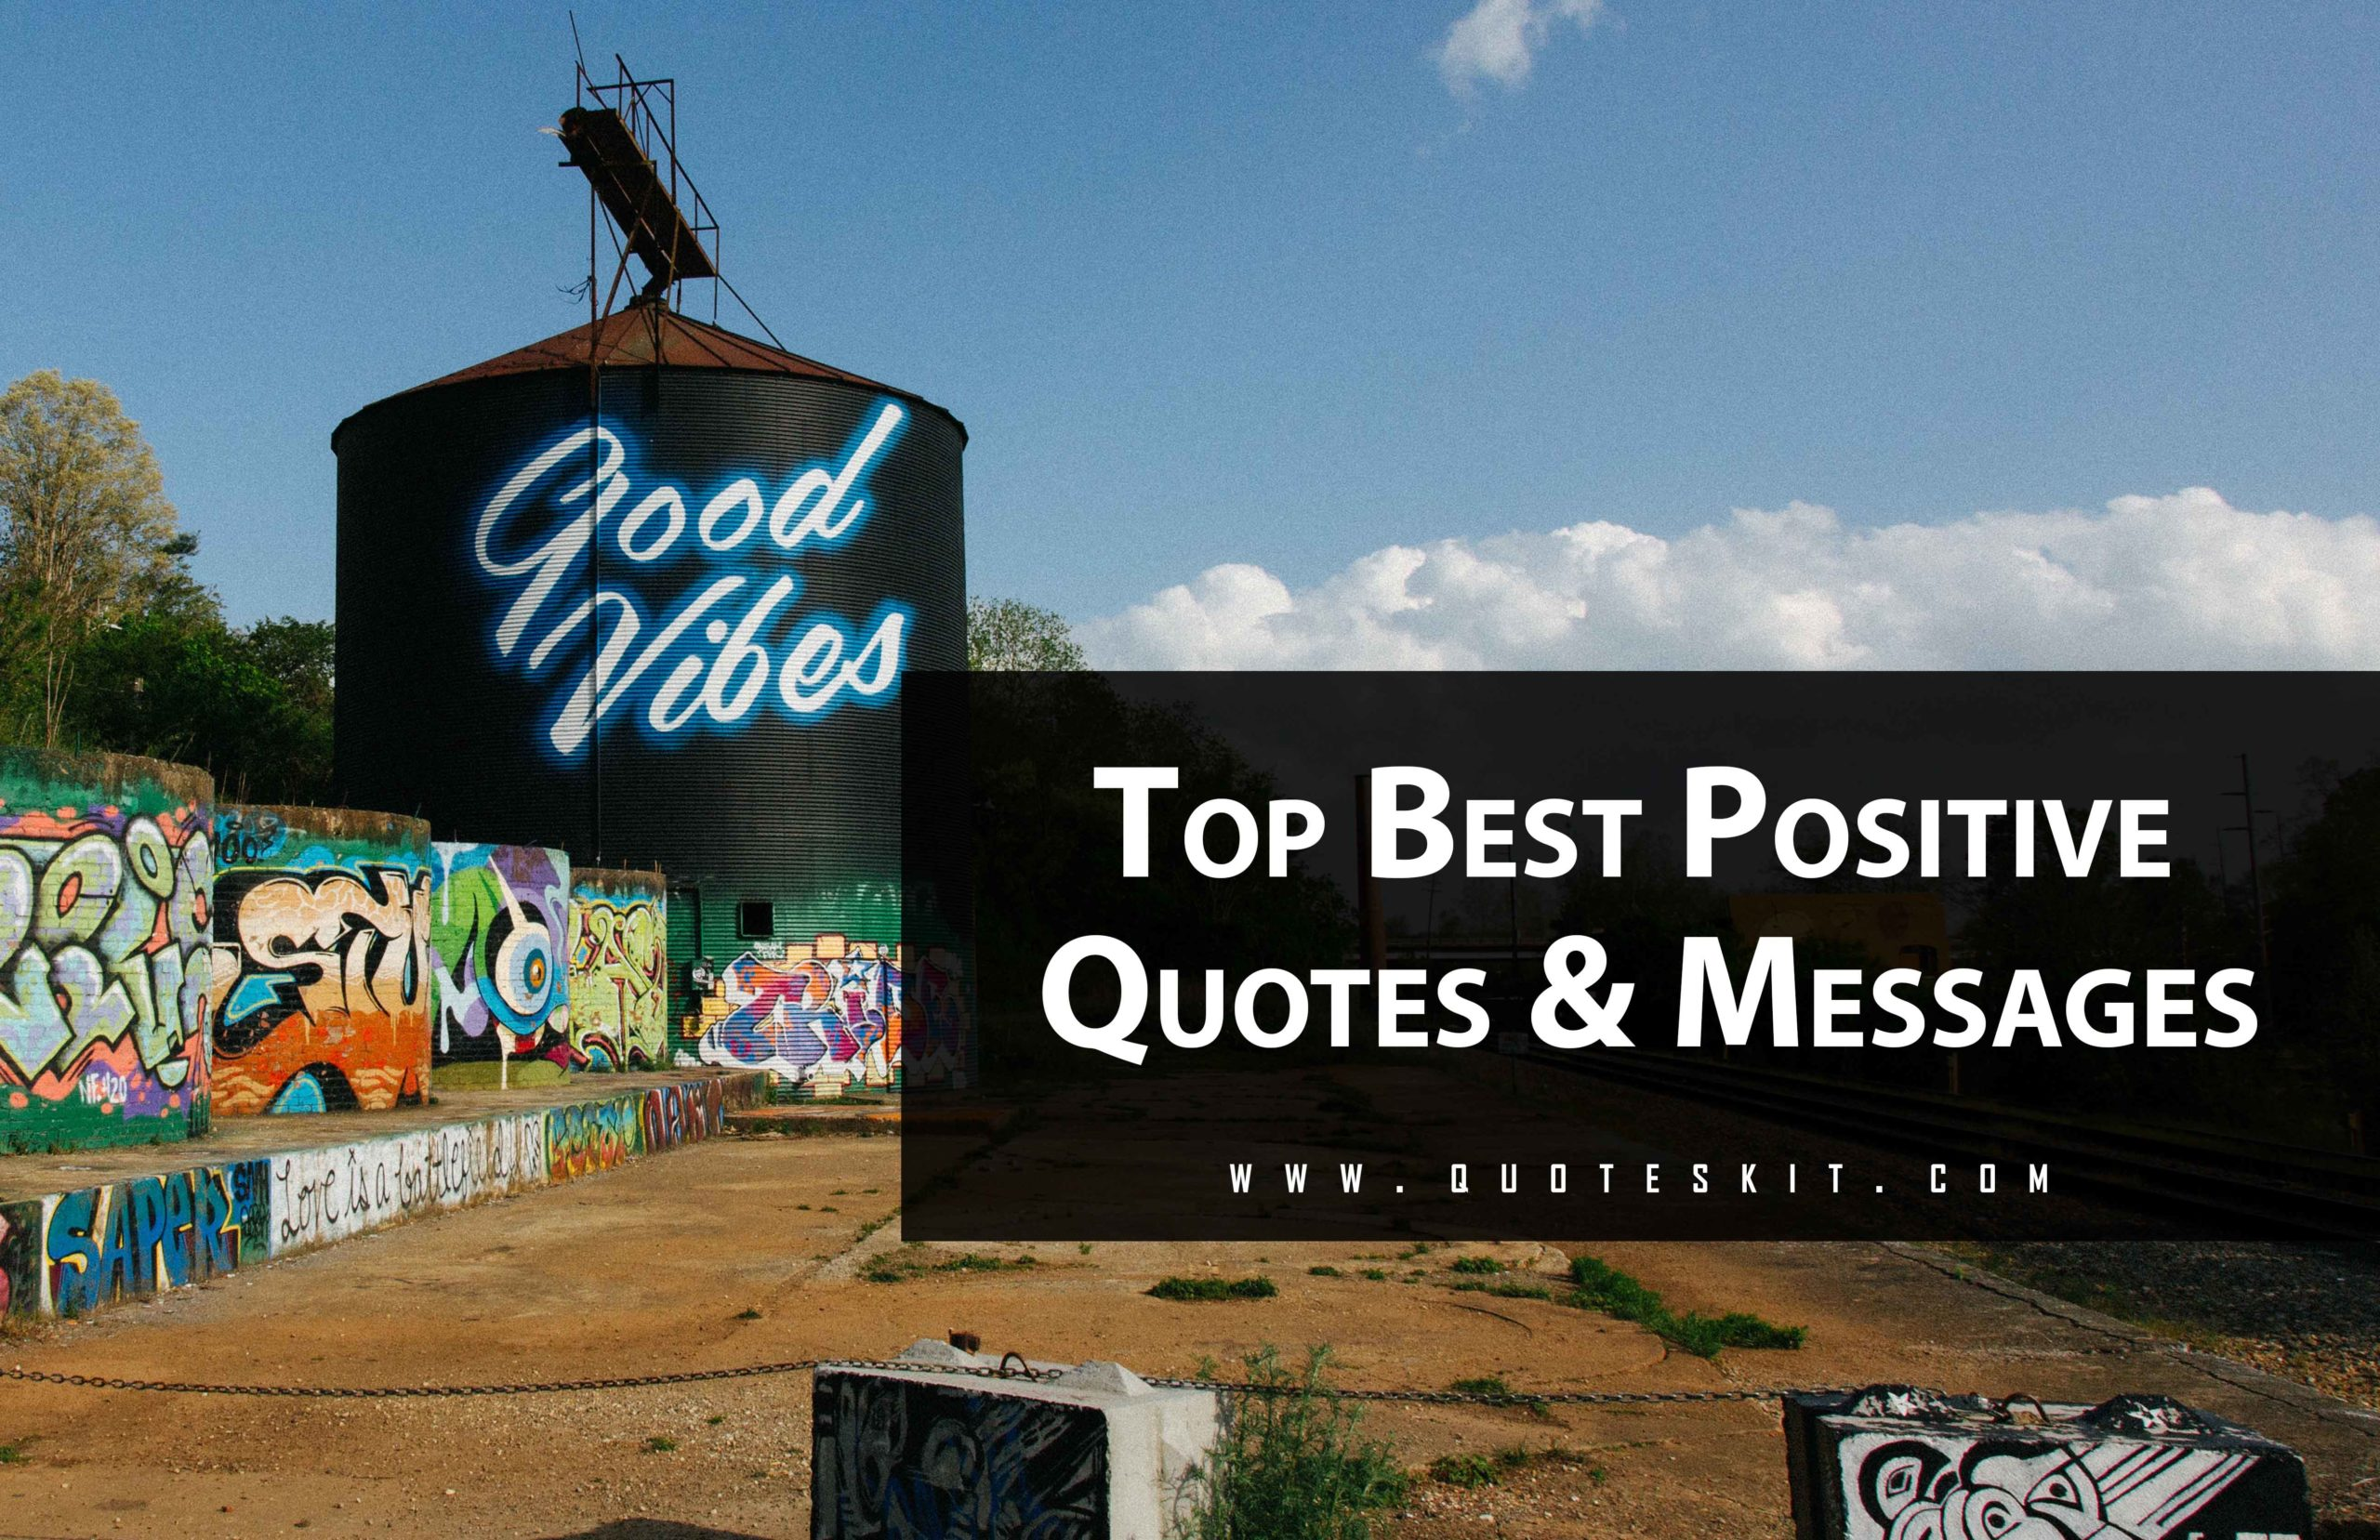 Top Best Positive Quotes & Messages